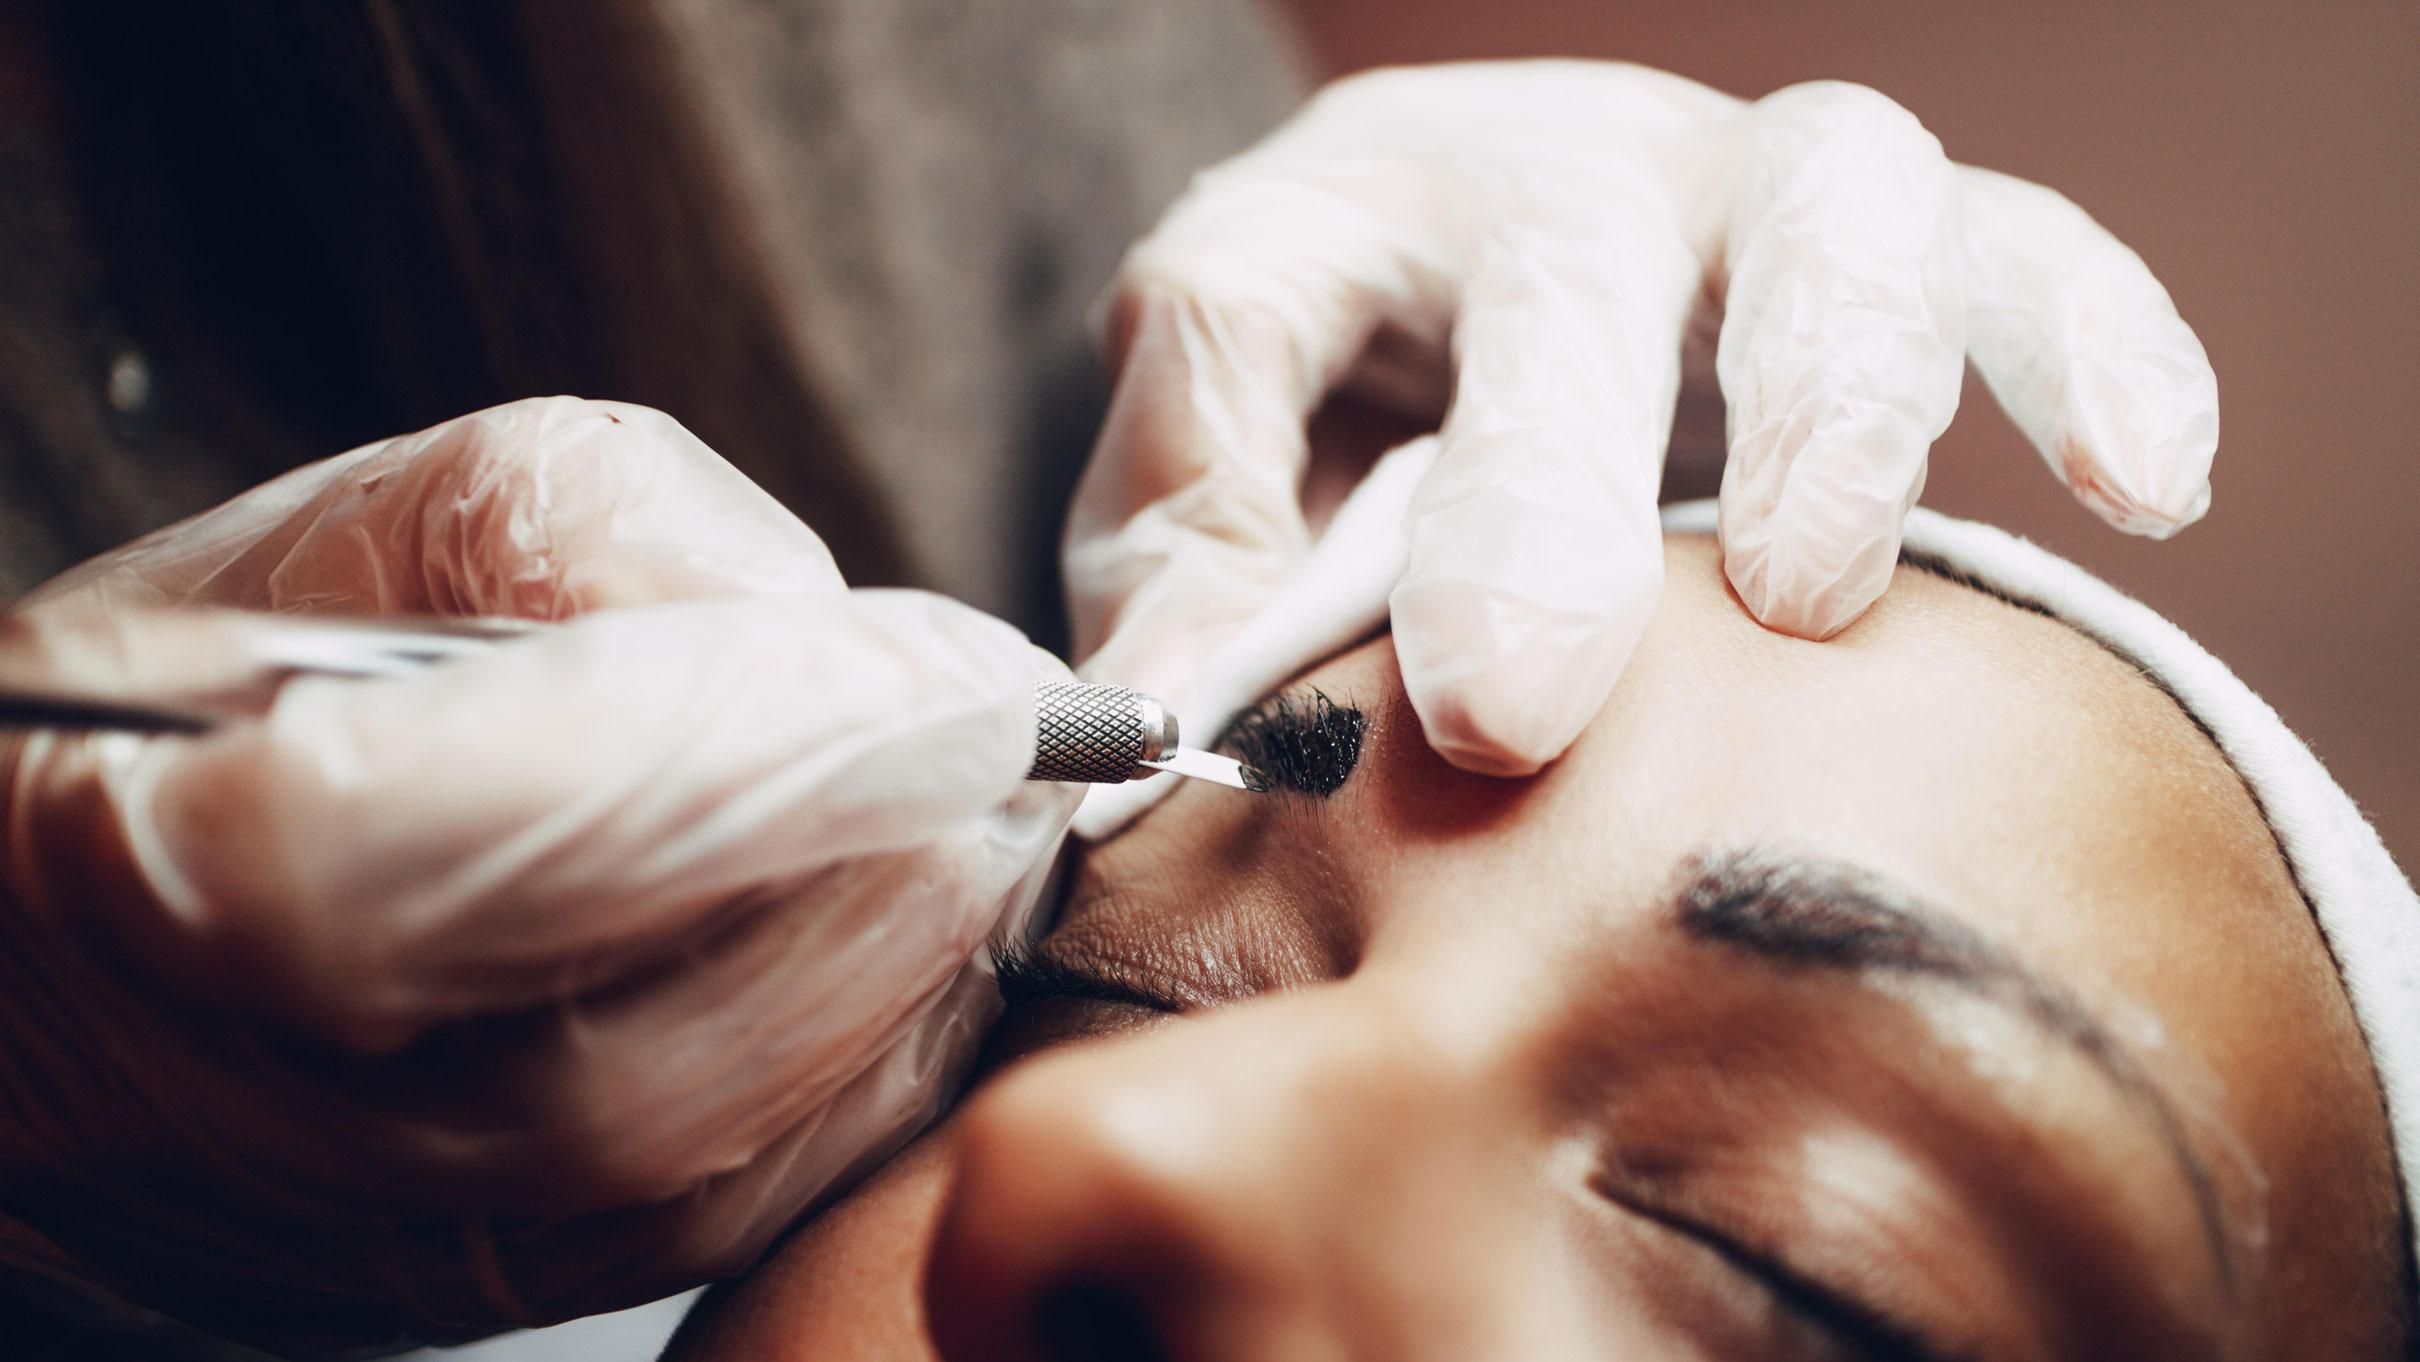 Tattooed eyebrows? Microblading makes its mark